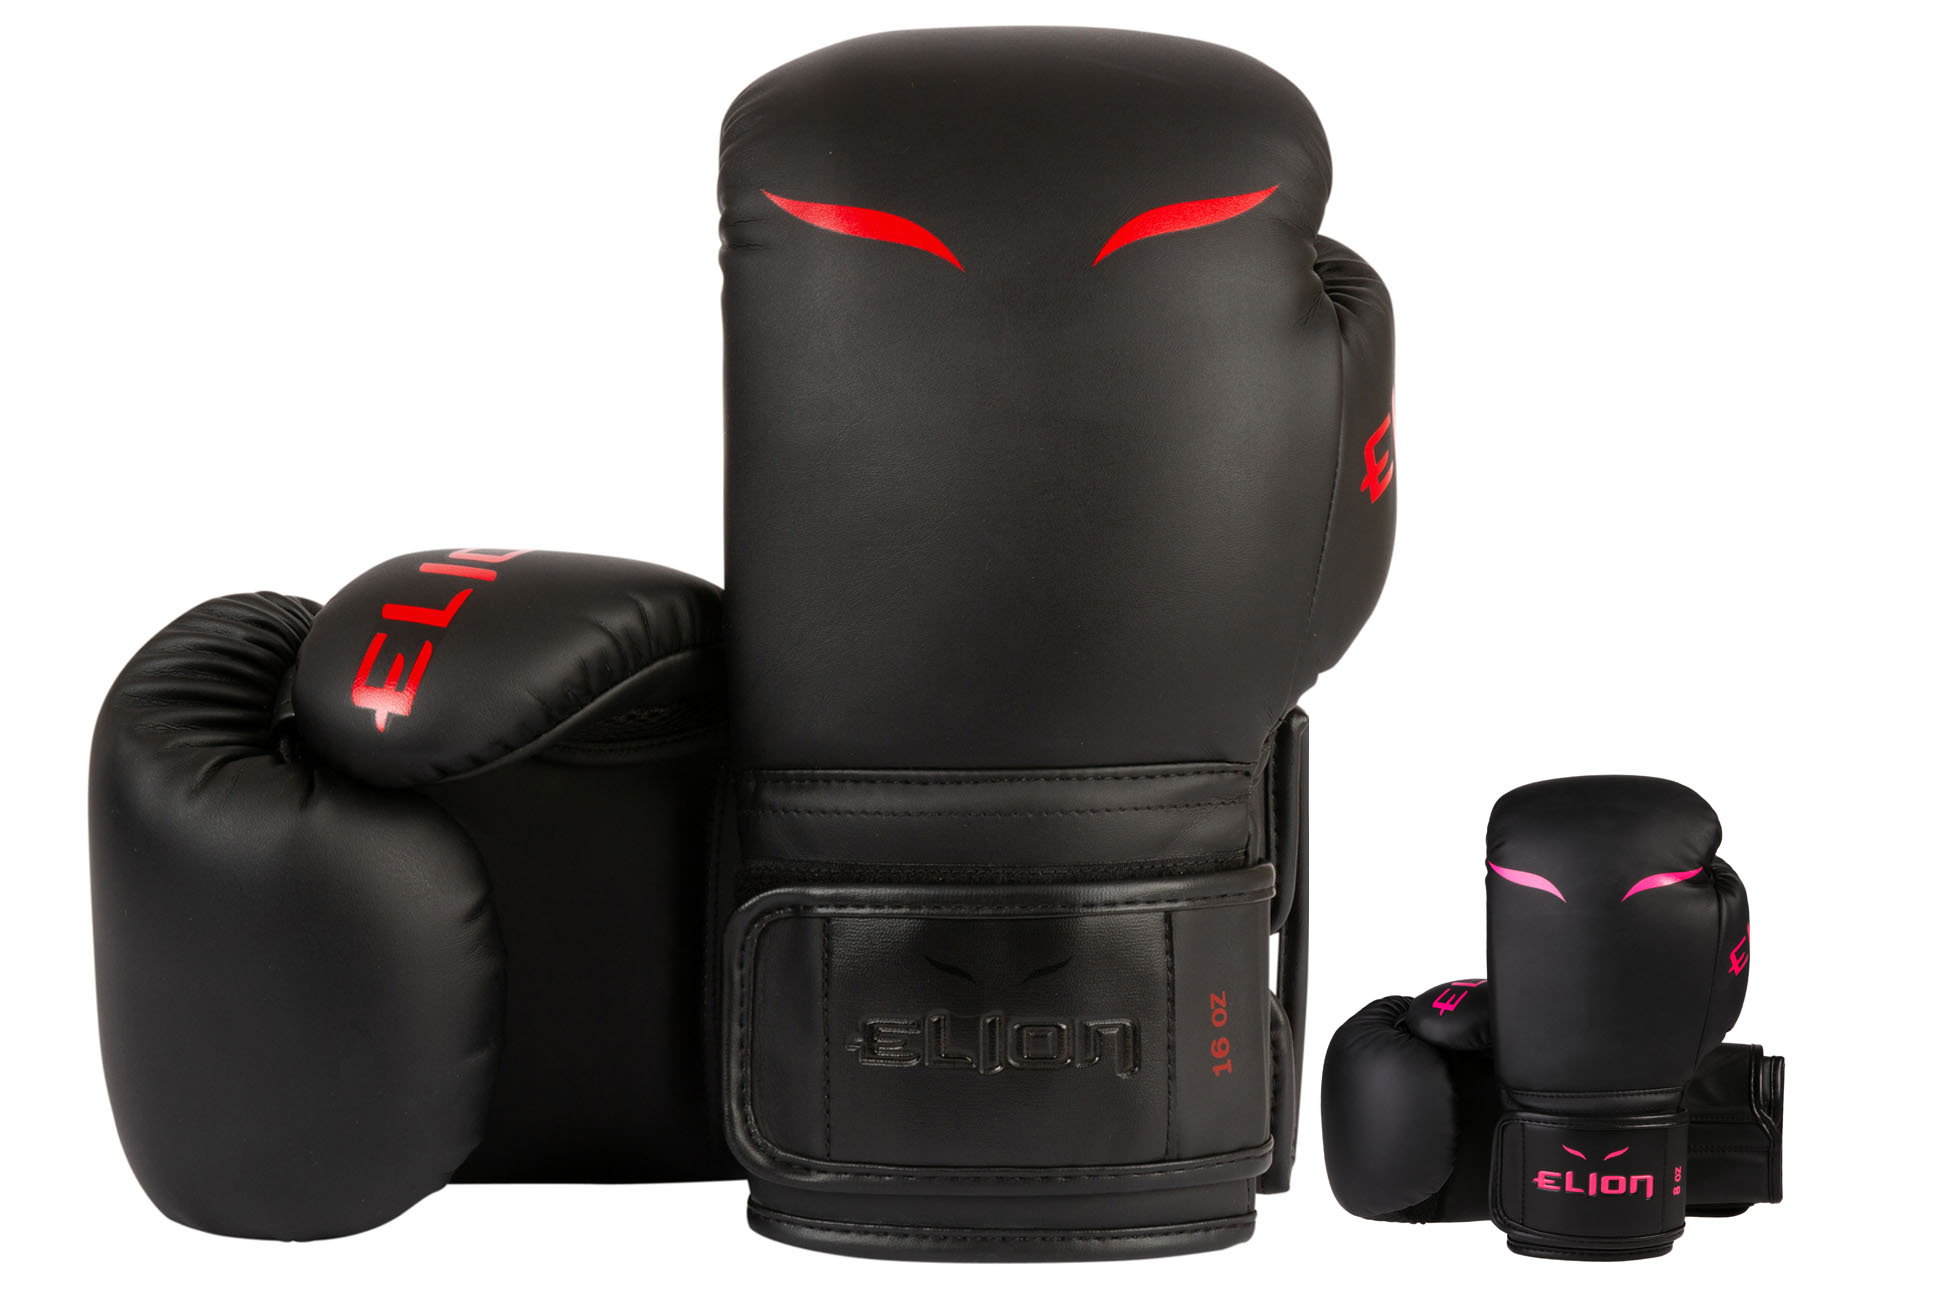 gants de boxe entraiment black red elion. Black Bedroom Furniture Sets. Home Design Ideas